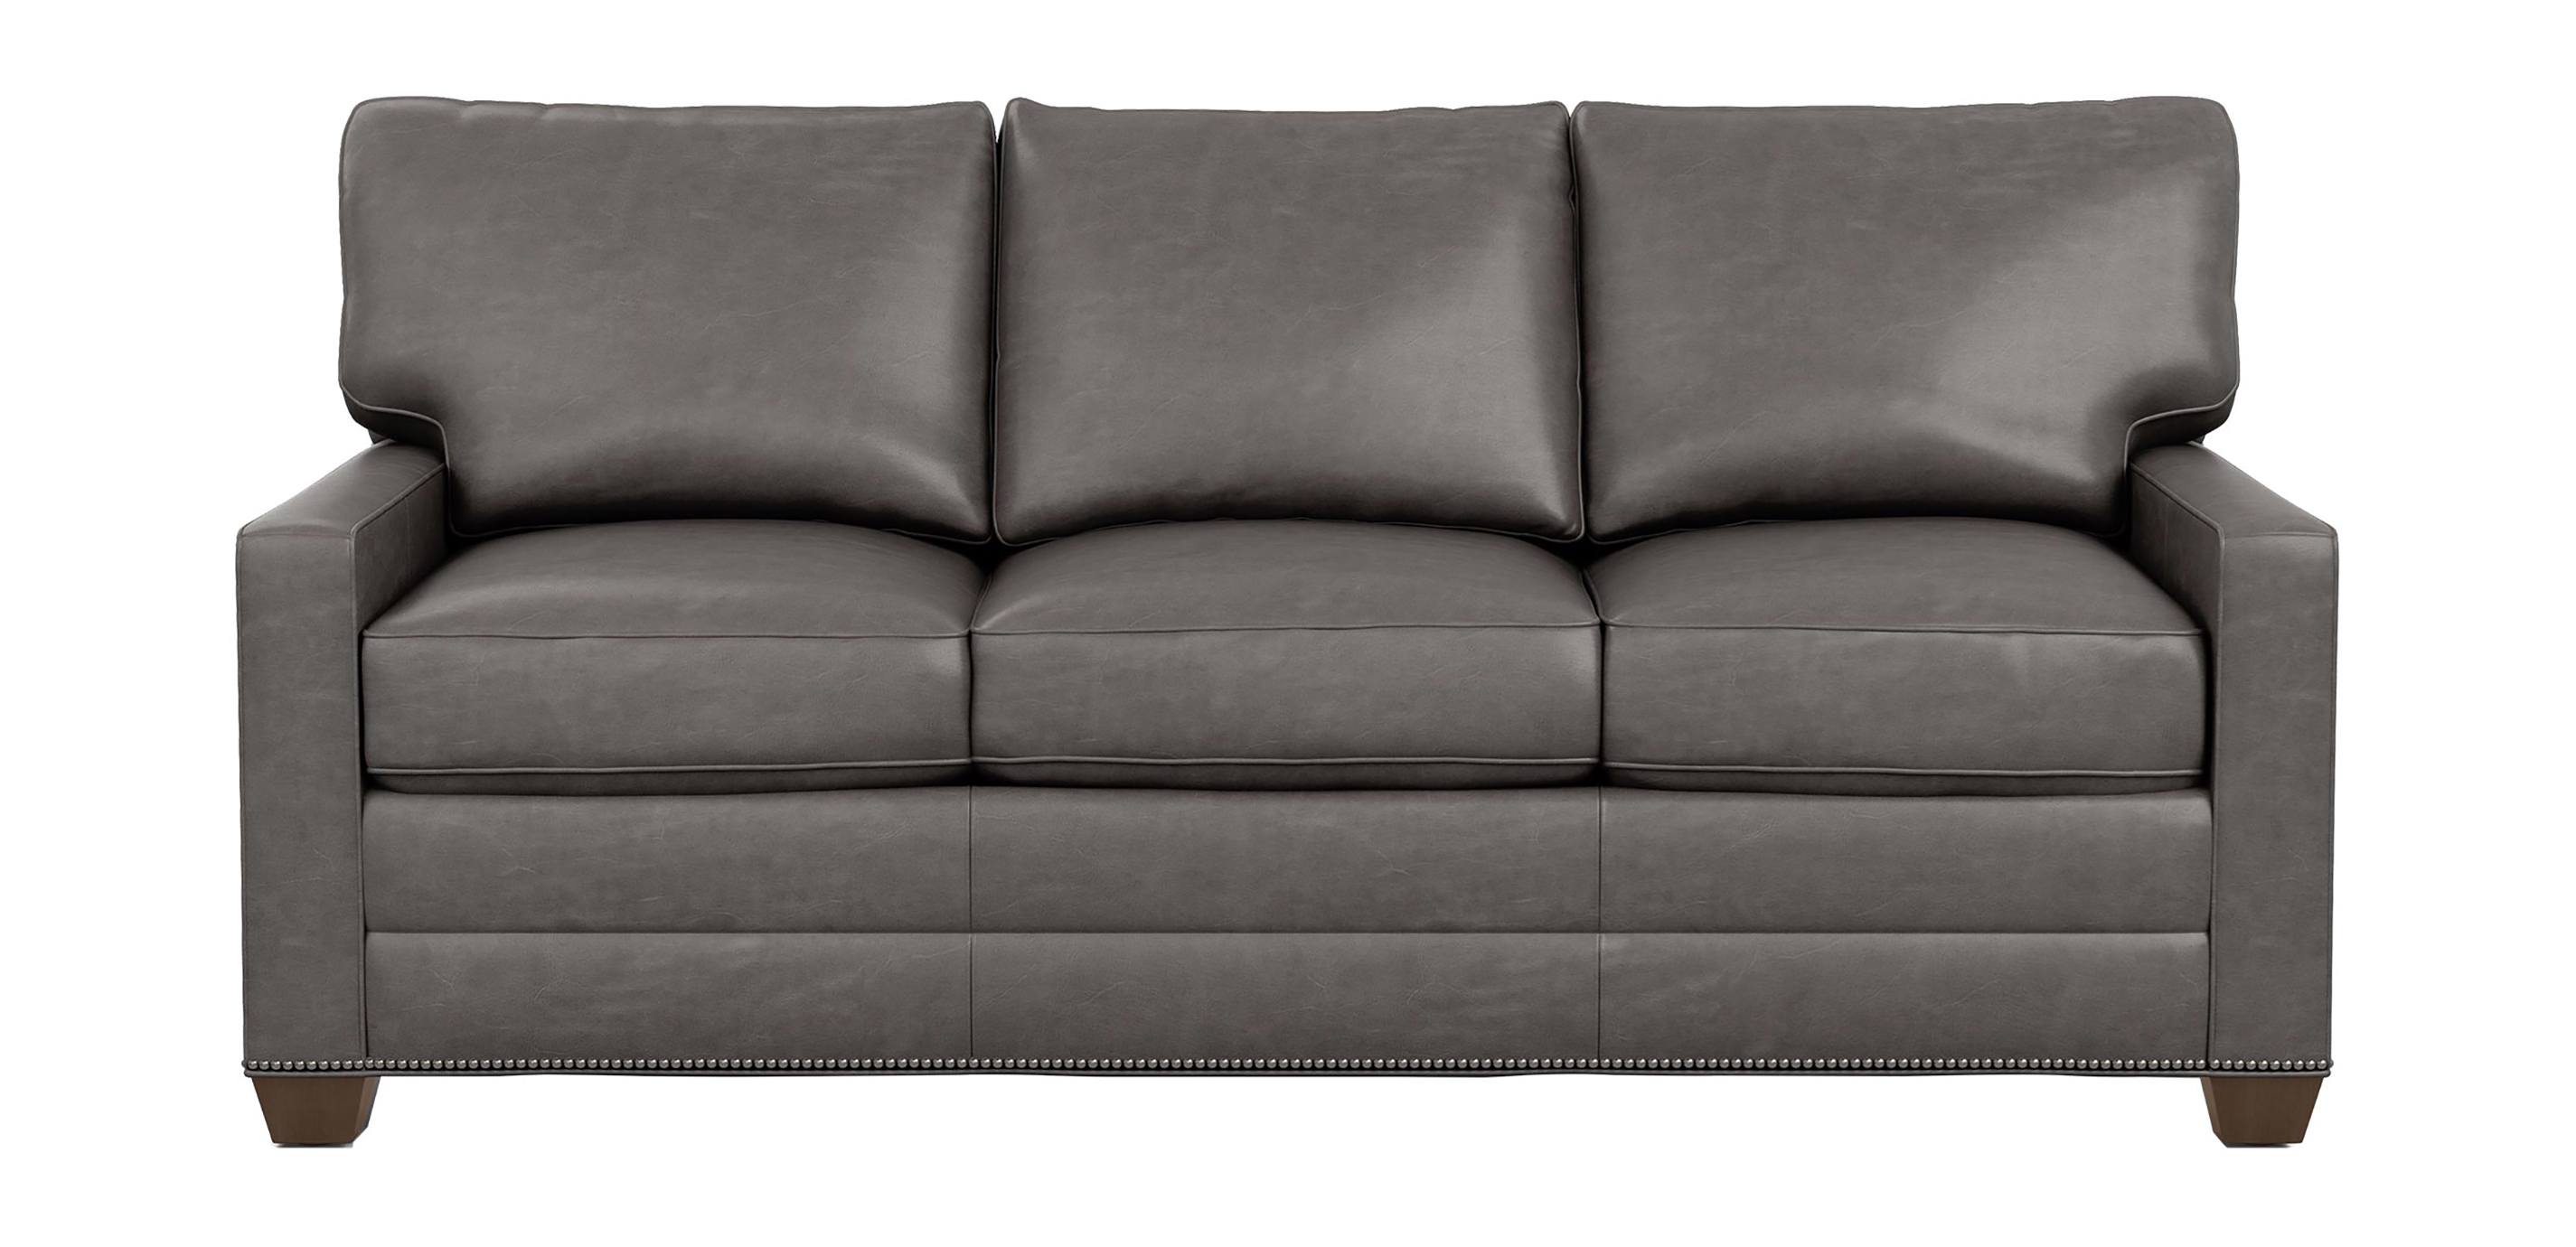 track arm sofa cheap sectional beds bennett leather three seat the